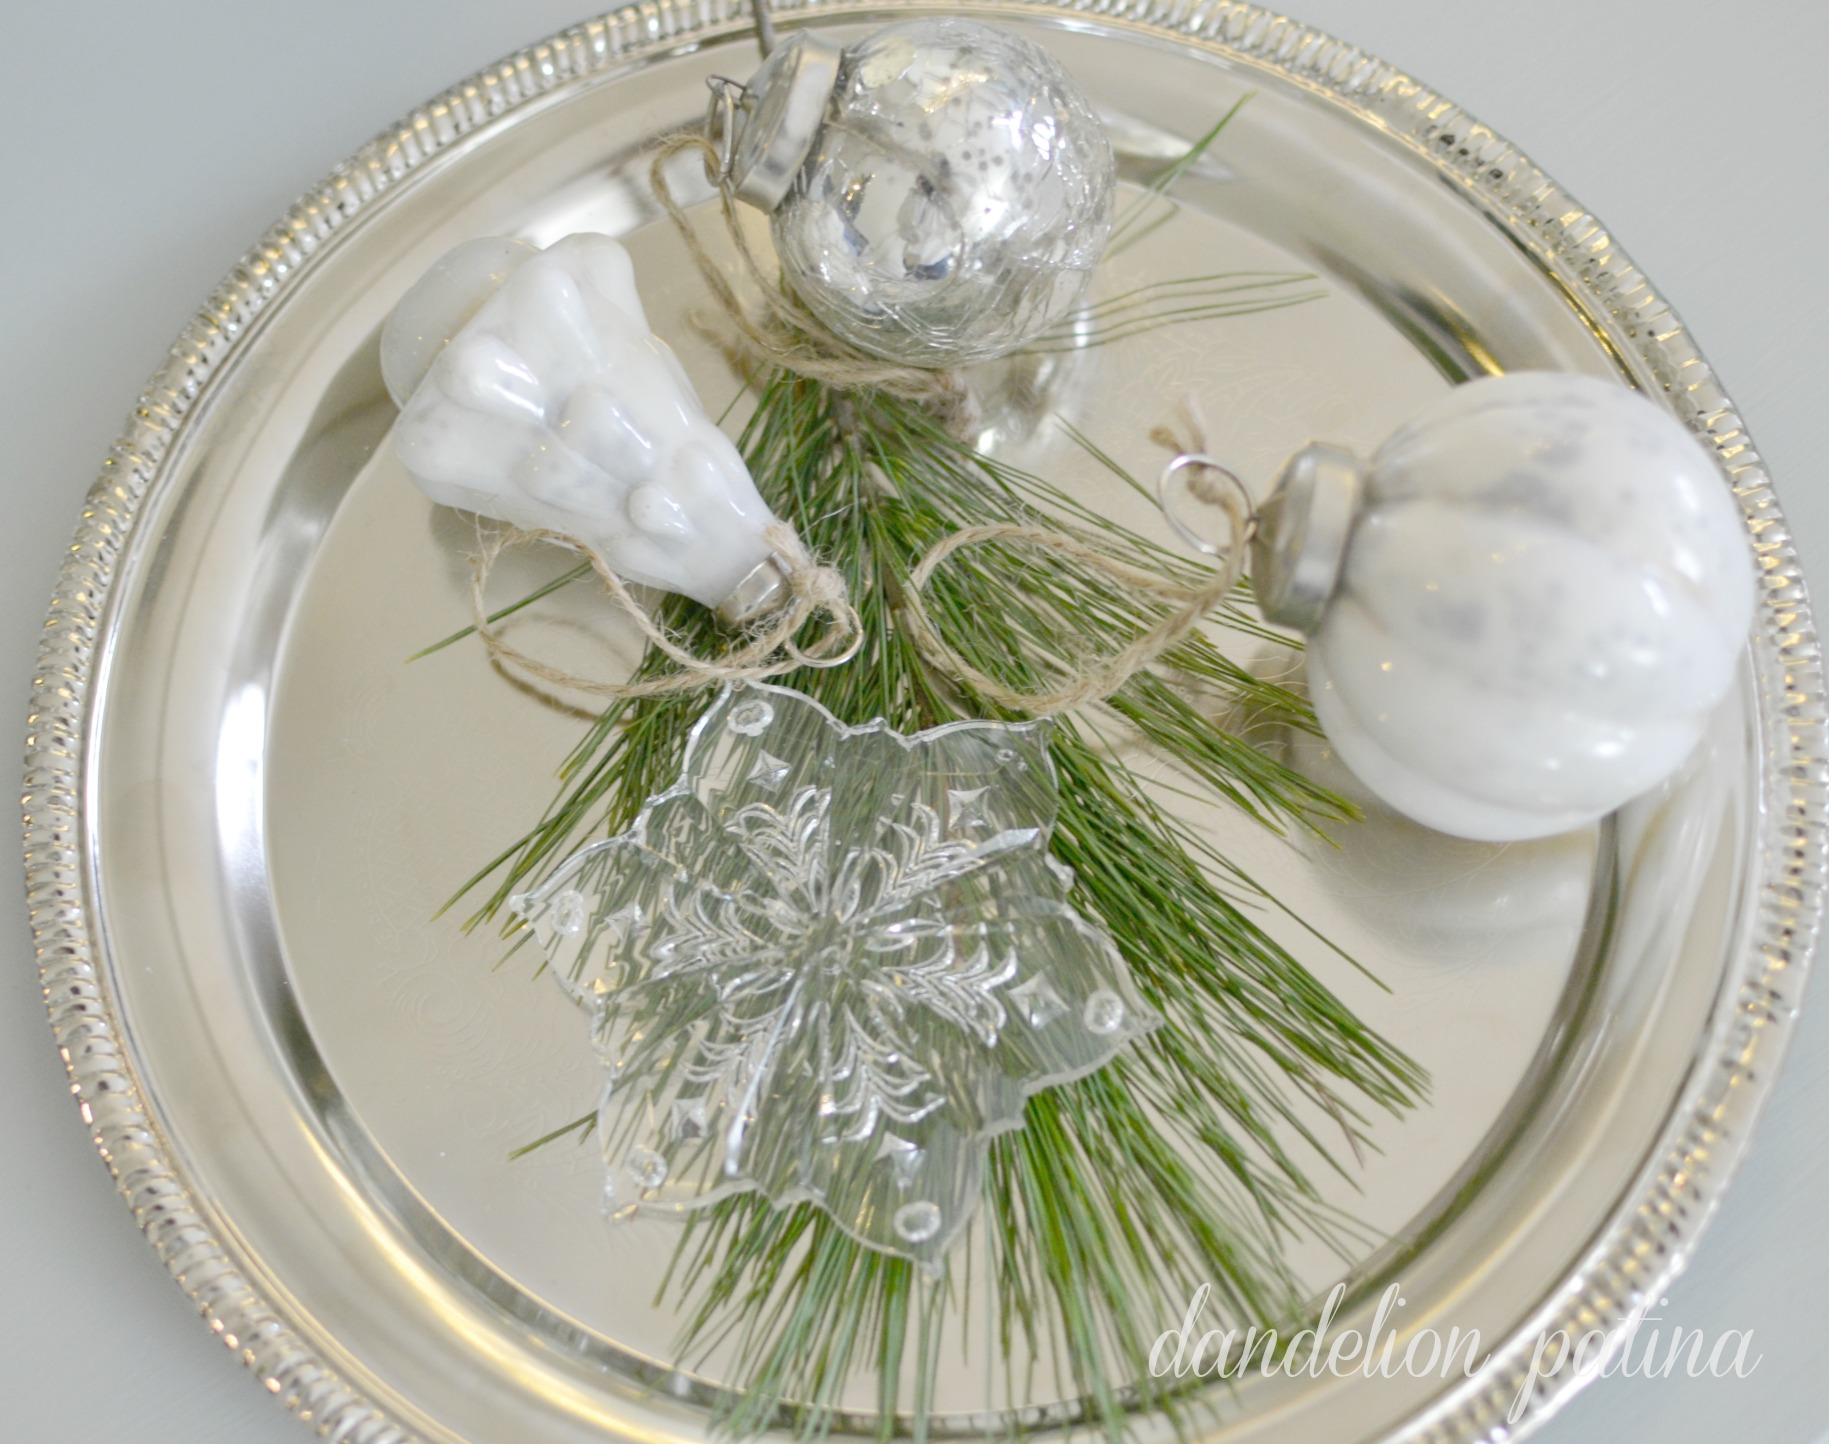 silver tray with ornaments